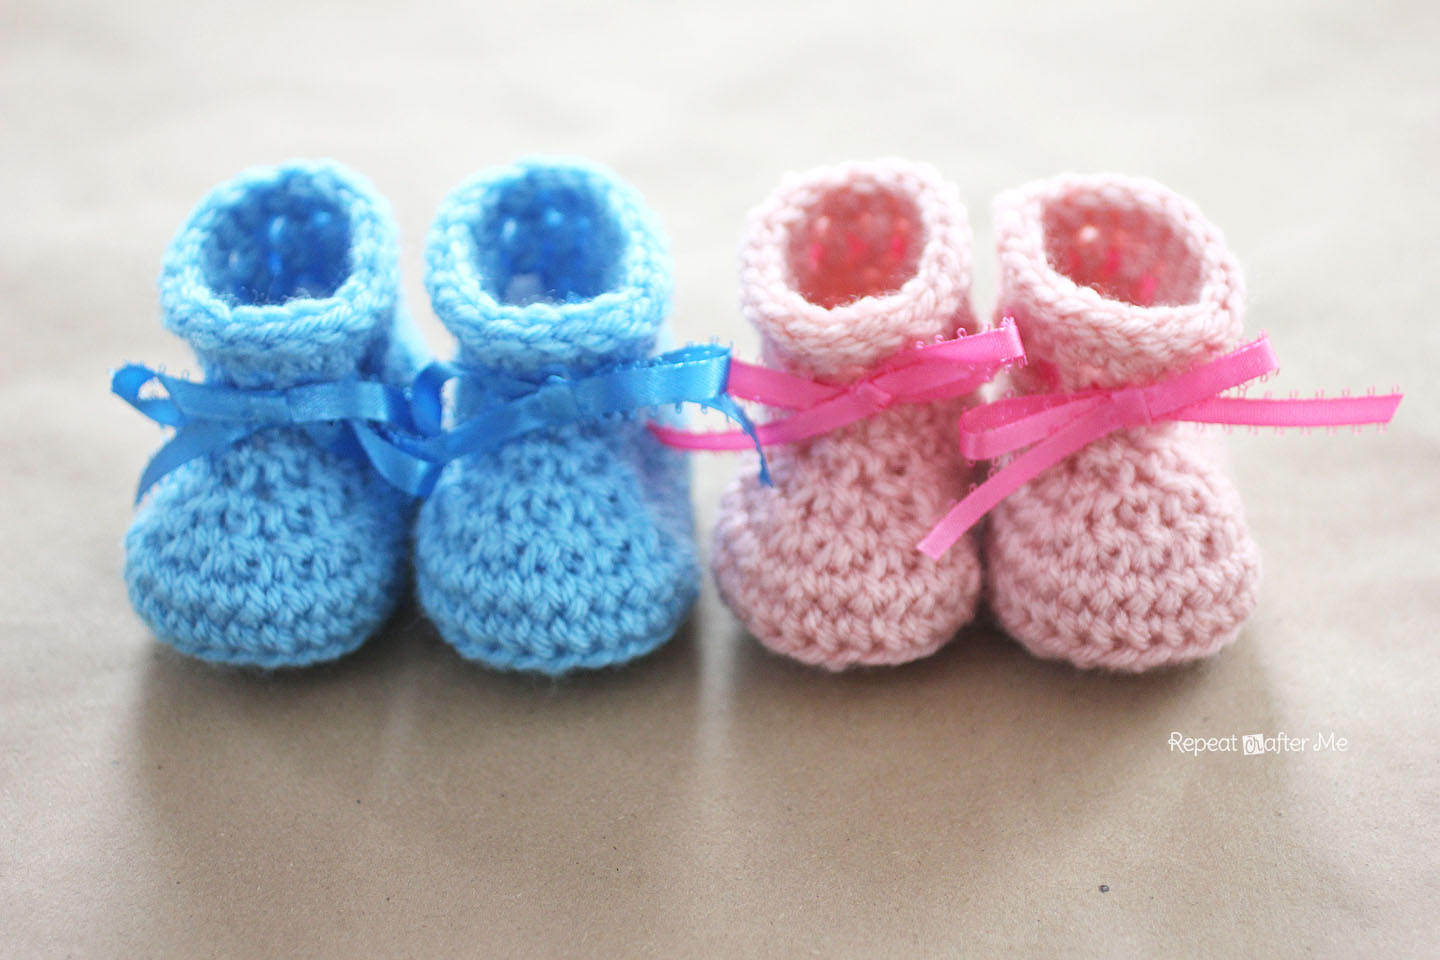 crochet baby booties diagram hard wired smoke detector wiring diagrams newborn pattern repeat crafter me